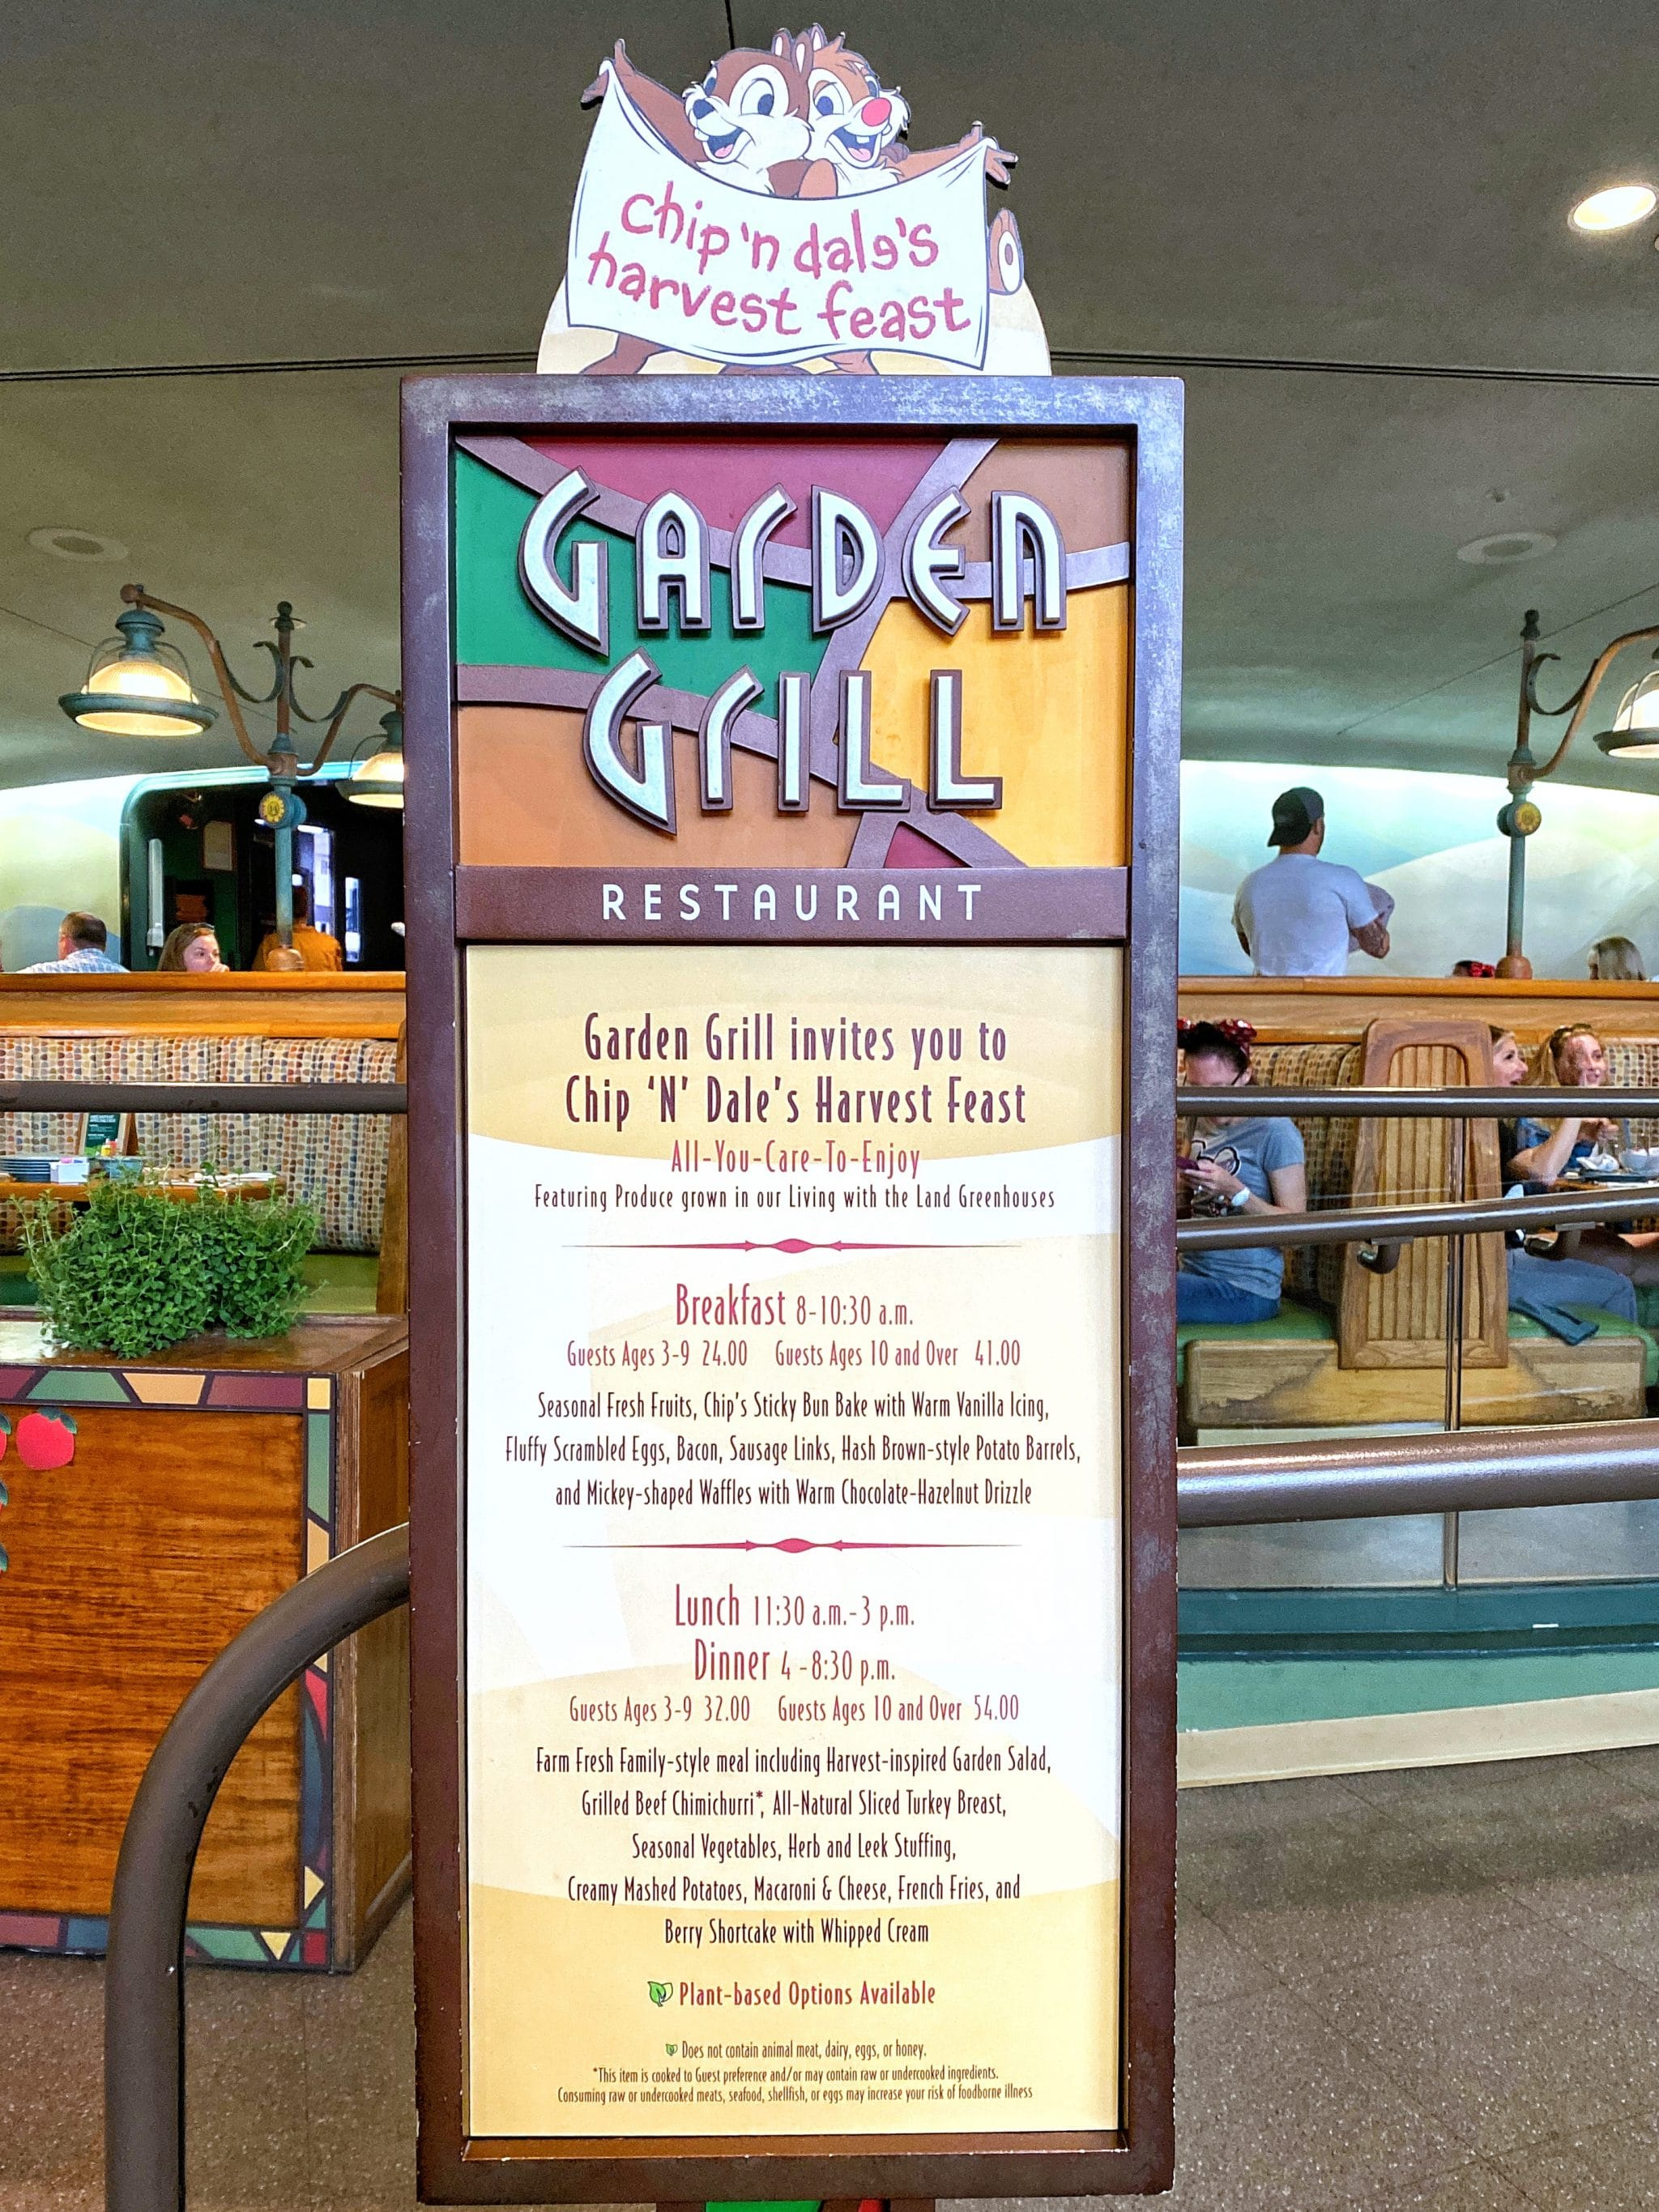 Garden Grill Vegan Character Breakfast Review in Epcot at Walt Disney World